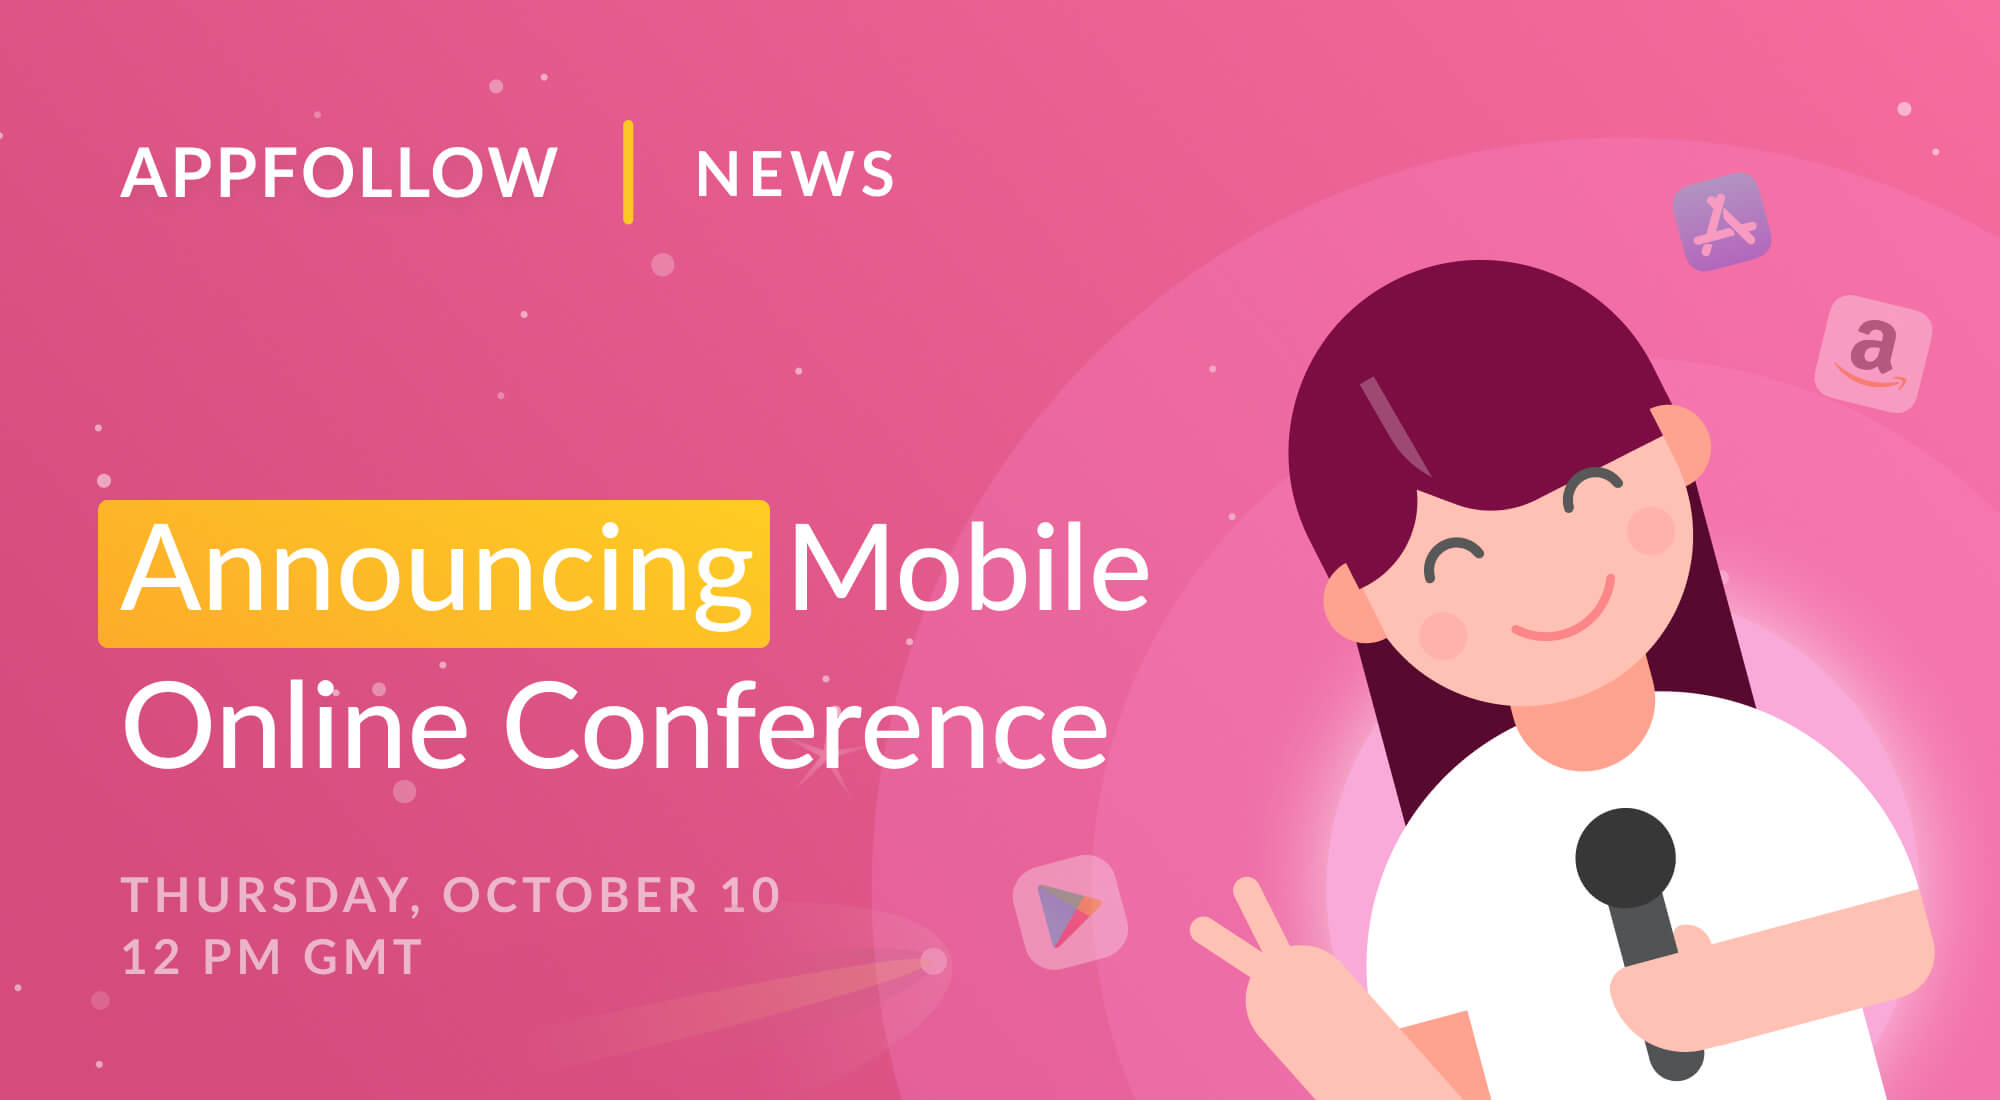 Announcing the 1st Edition of Mobile Online Conference